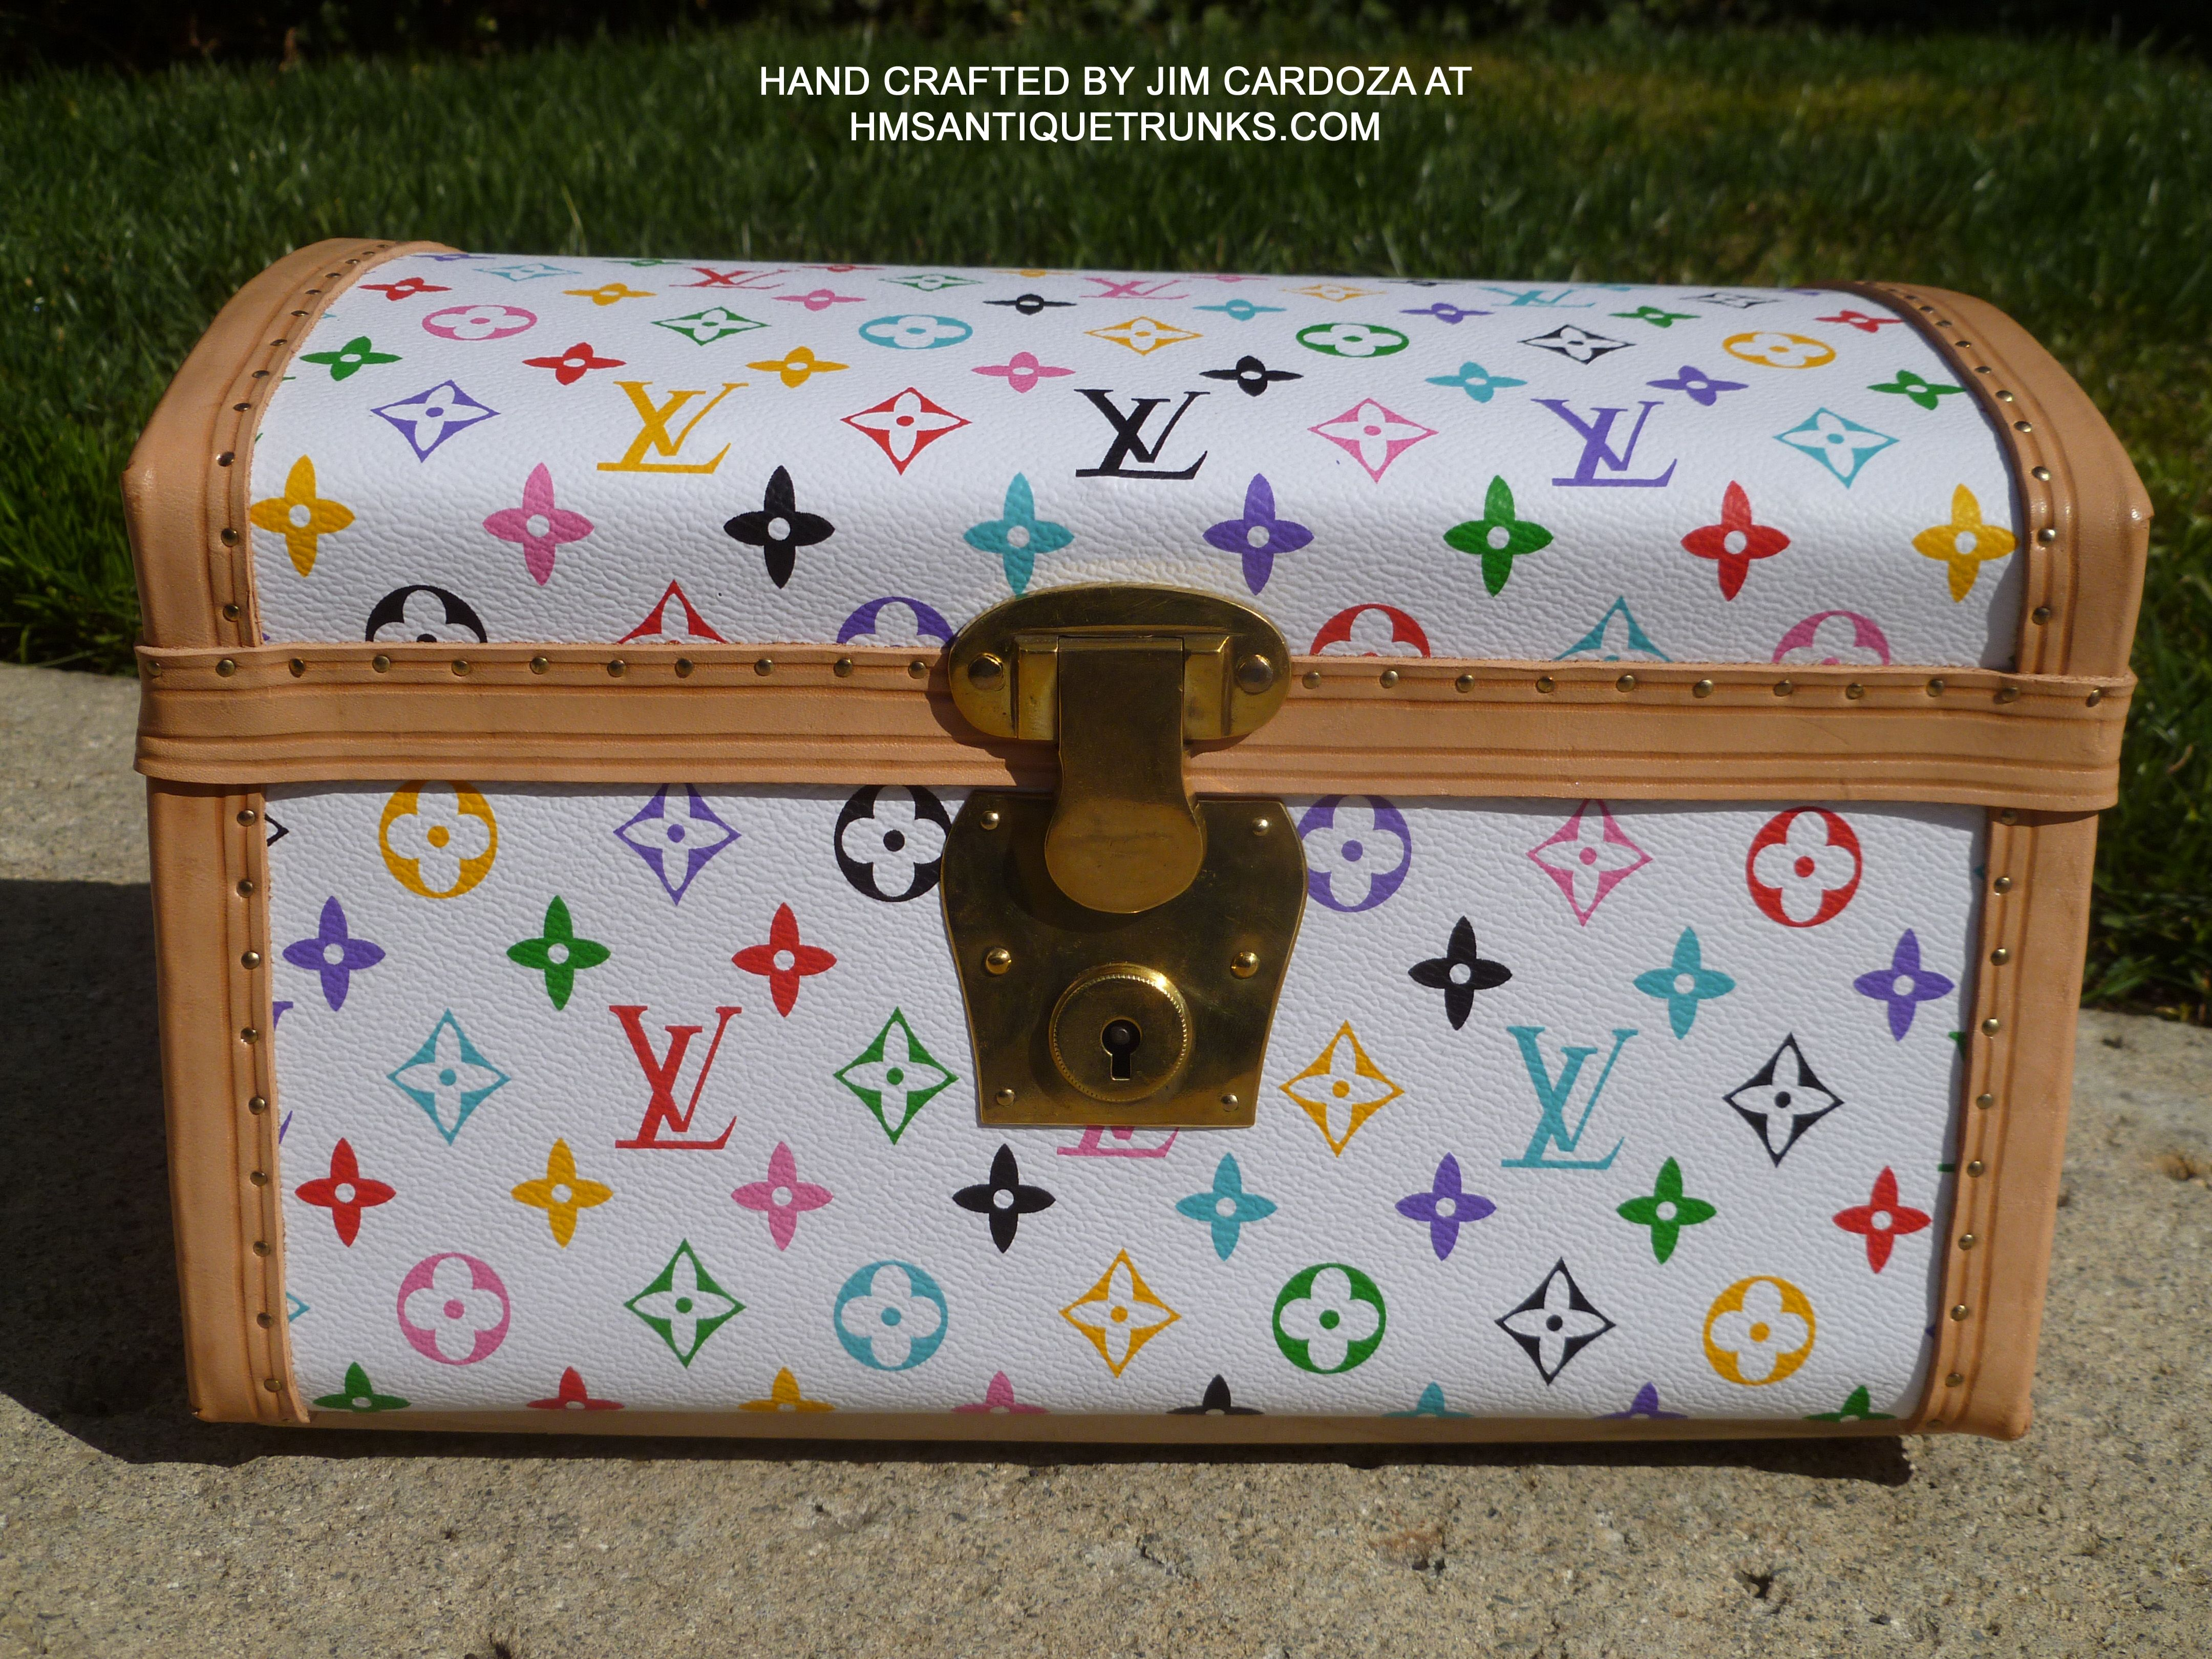 LOUIS VUITTON HOMAGE TRUNK HAND CRAFTED BY JIM CARDOZA AT HMSANTIQUETRUNKS.COM